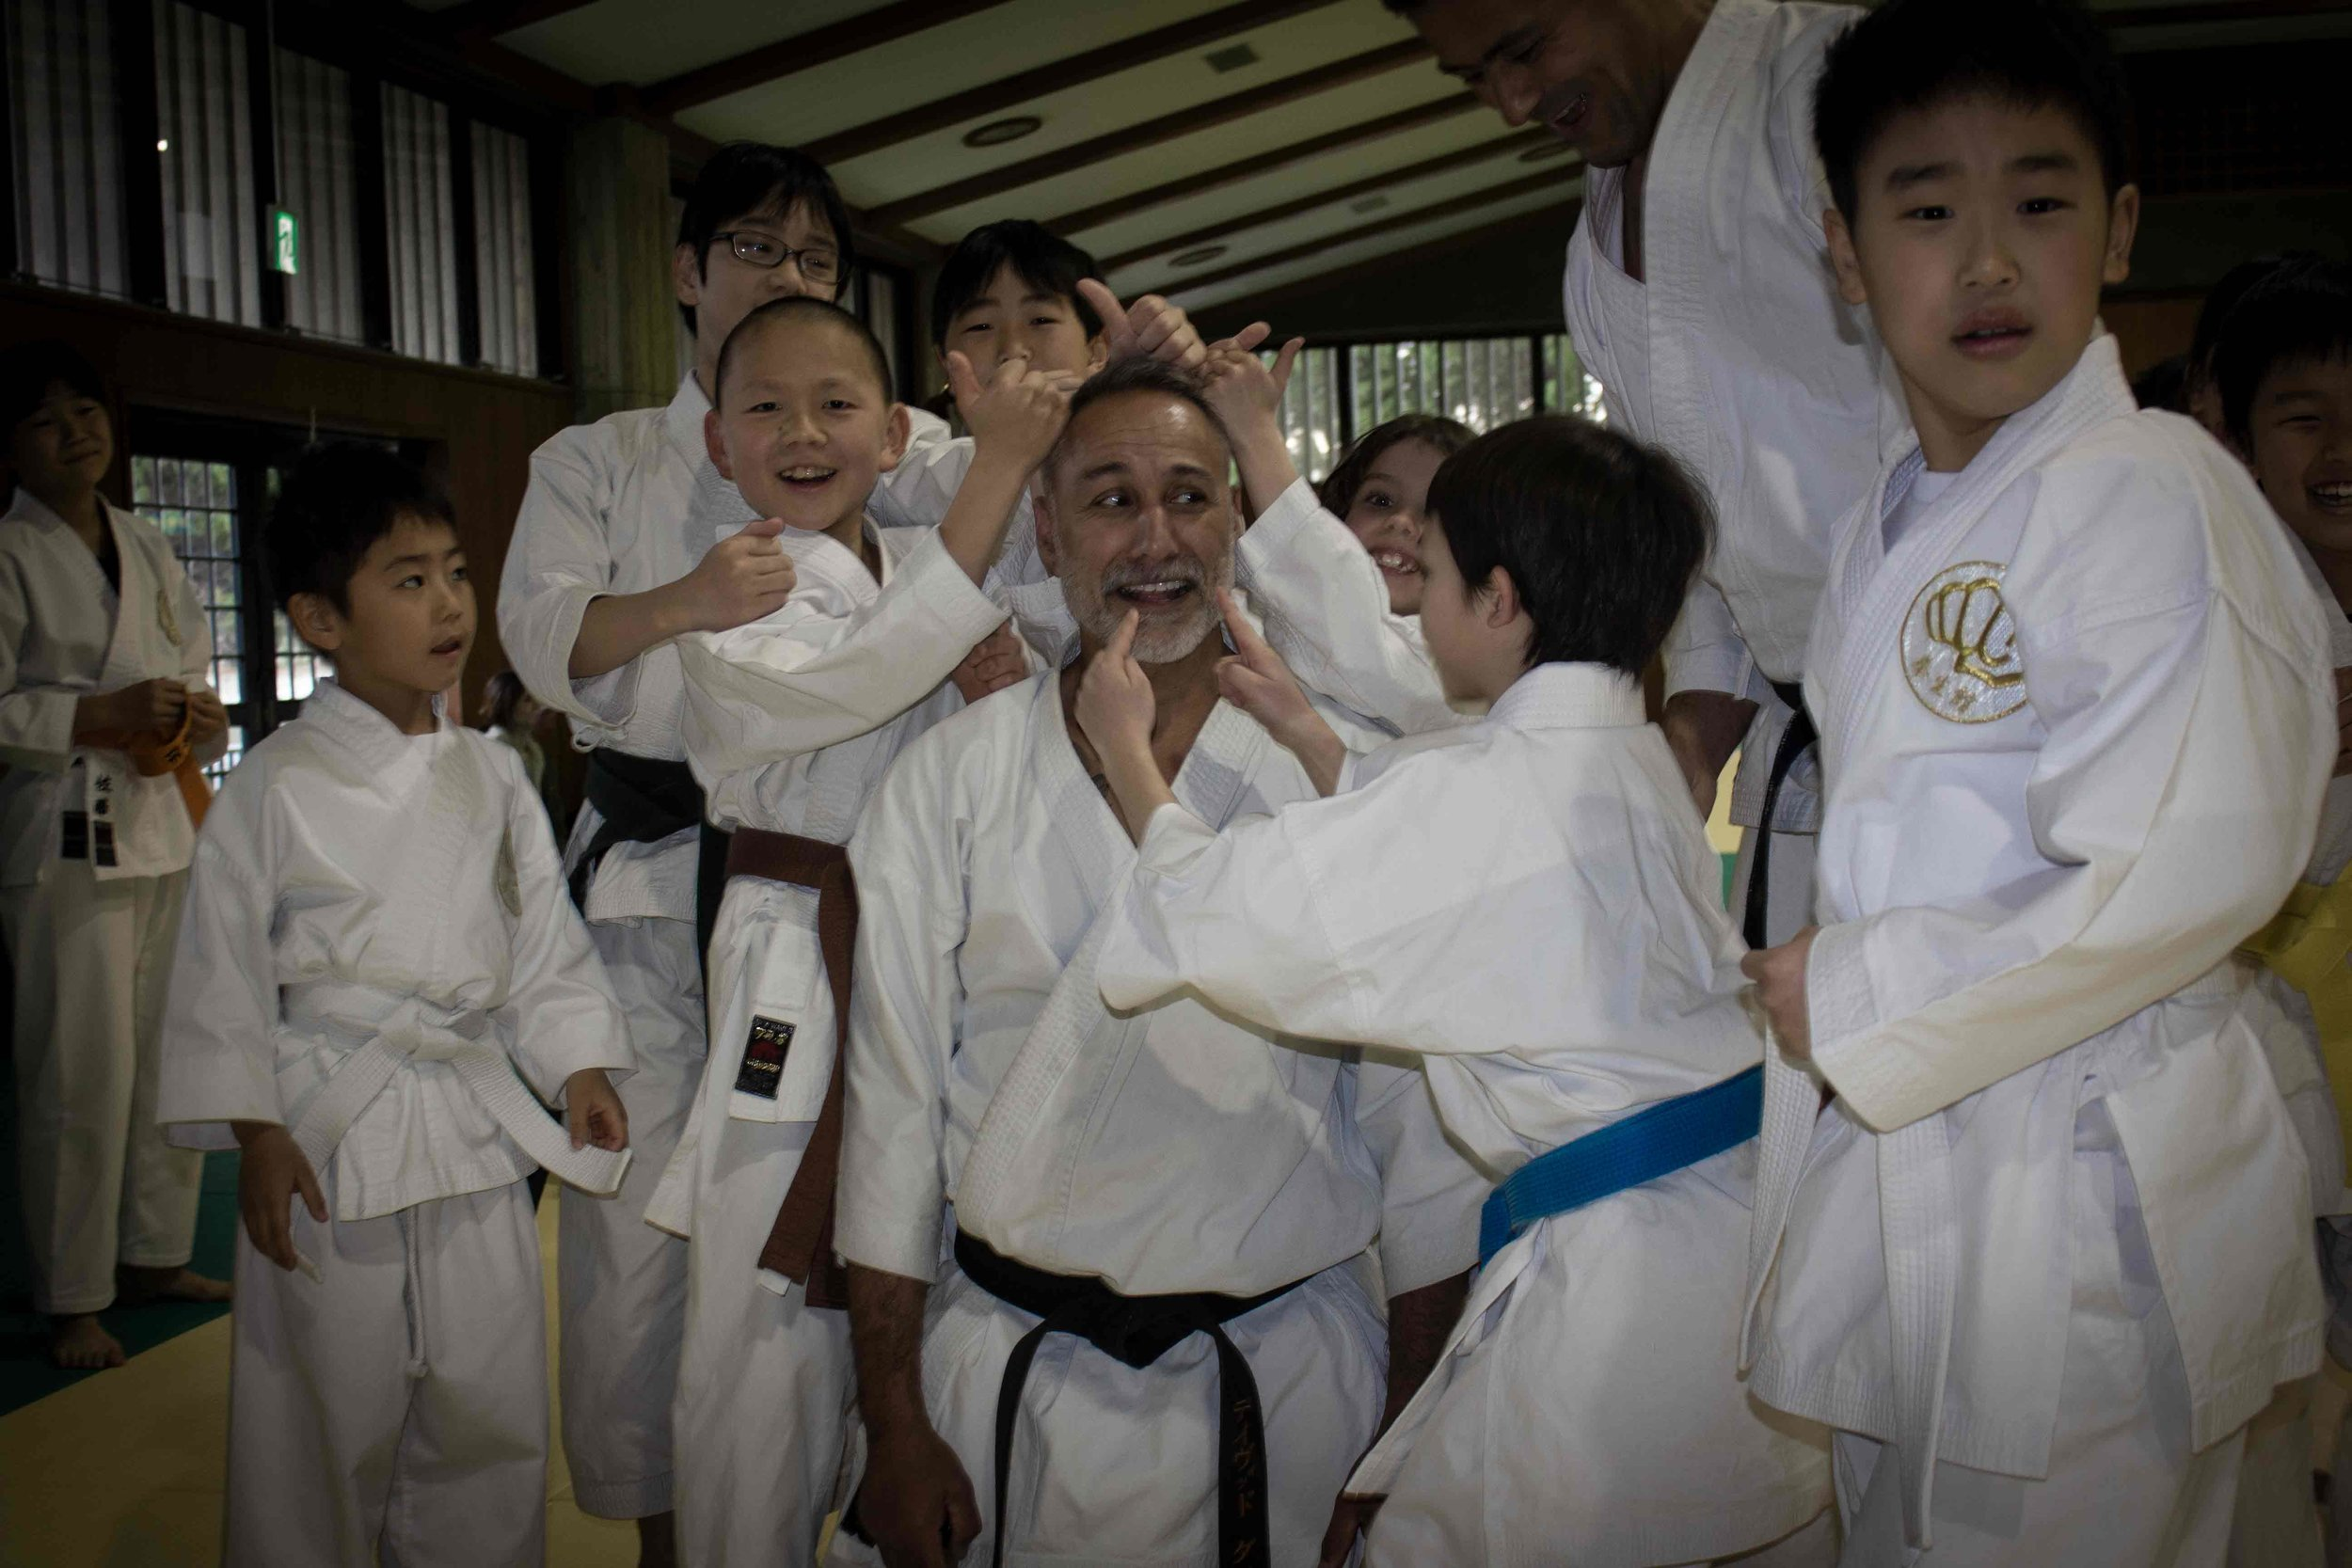 sensei-and-kids-04.jpg